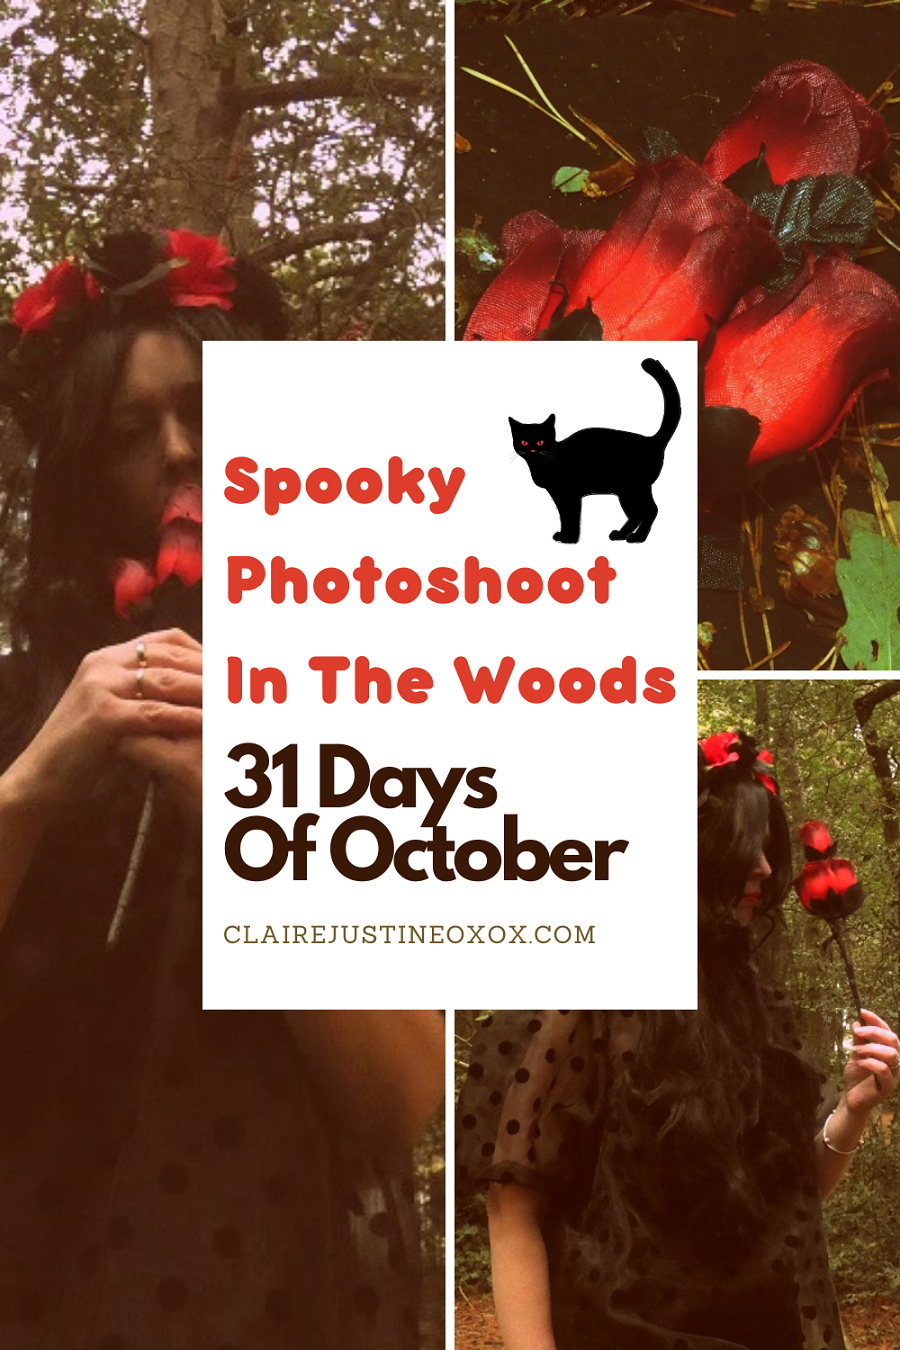 Spooky Photoshoot In The Woods 31 Days Of October.